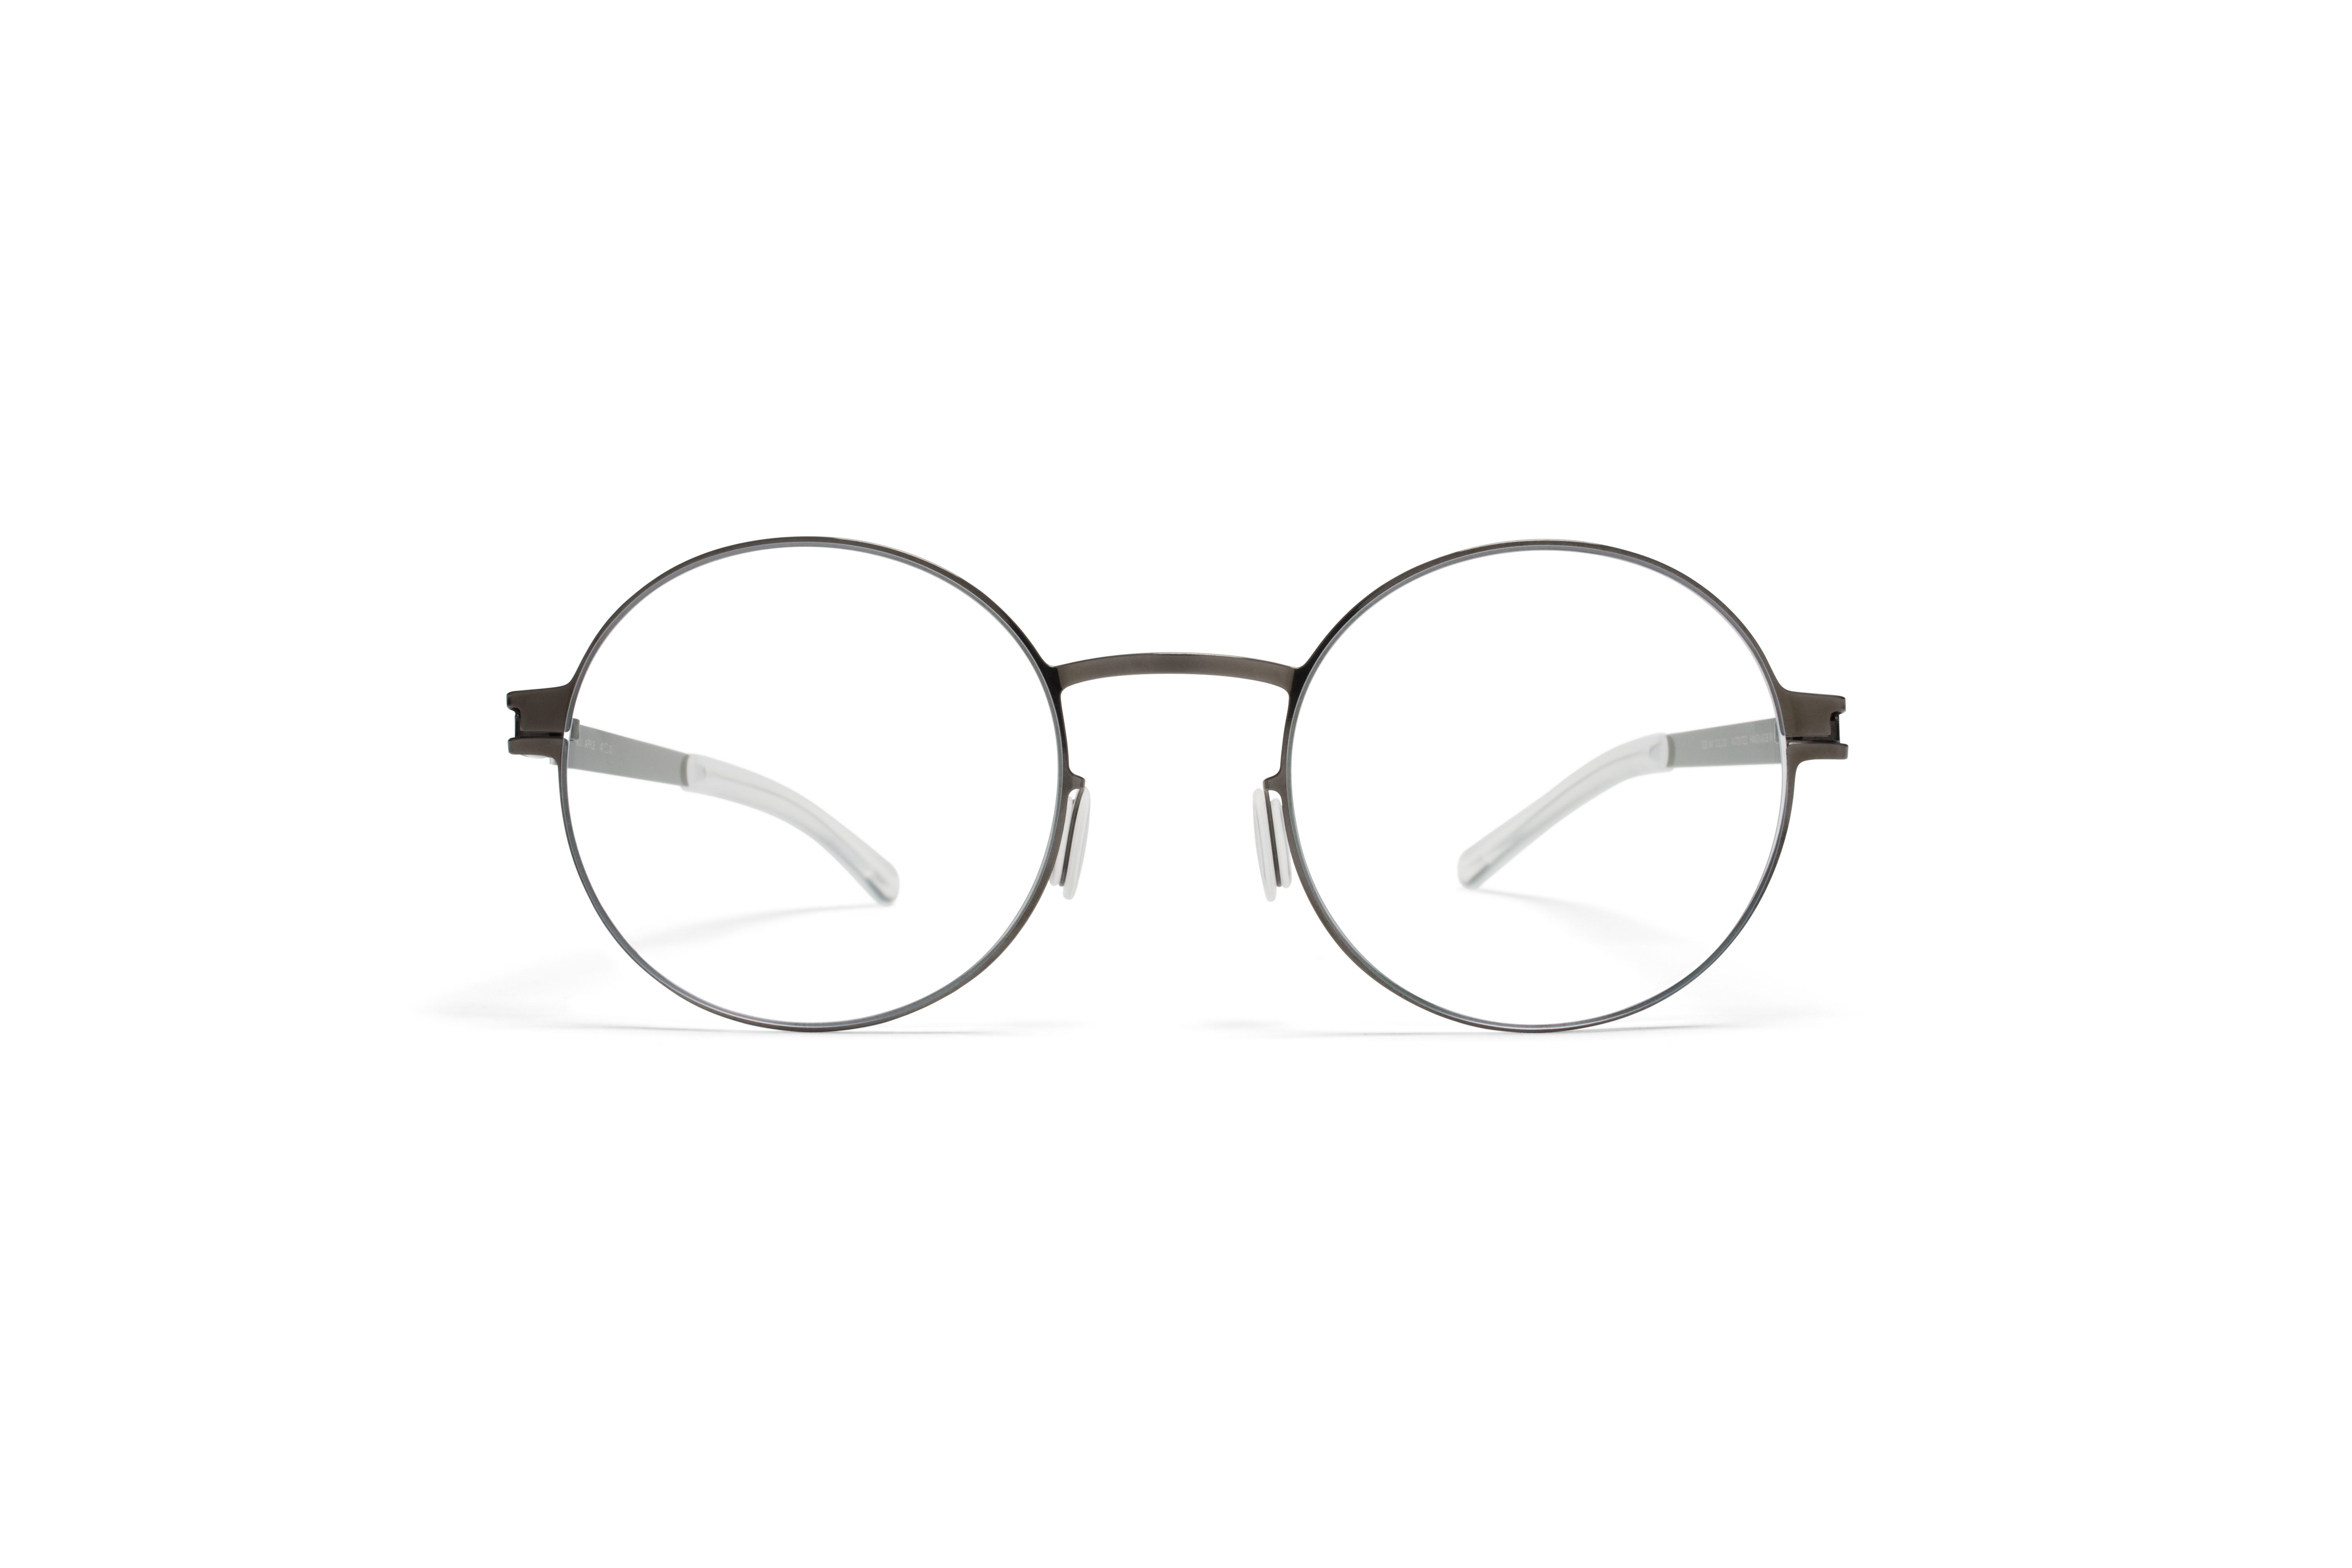 MYKITA No1 Rx Apple Shinygraphite Clear P58a44ecd269cc